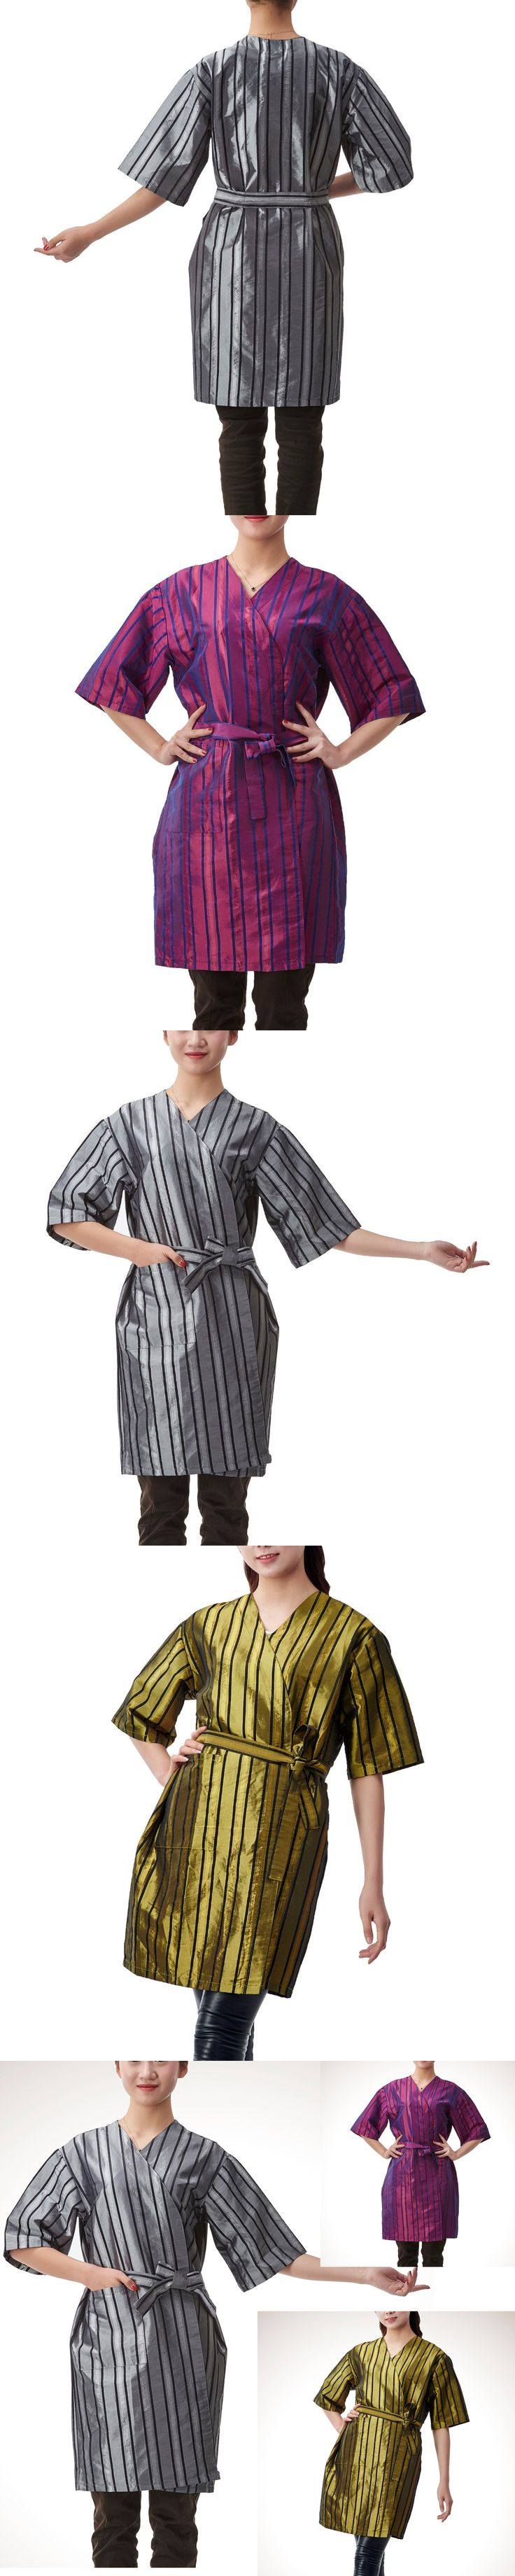 1pcs Professional Hairdressing Kimono Beauty SPA Gown Robe Hair Capes Stripes Styling Barber Salon Hairdresser Wrap Cloth